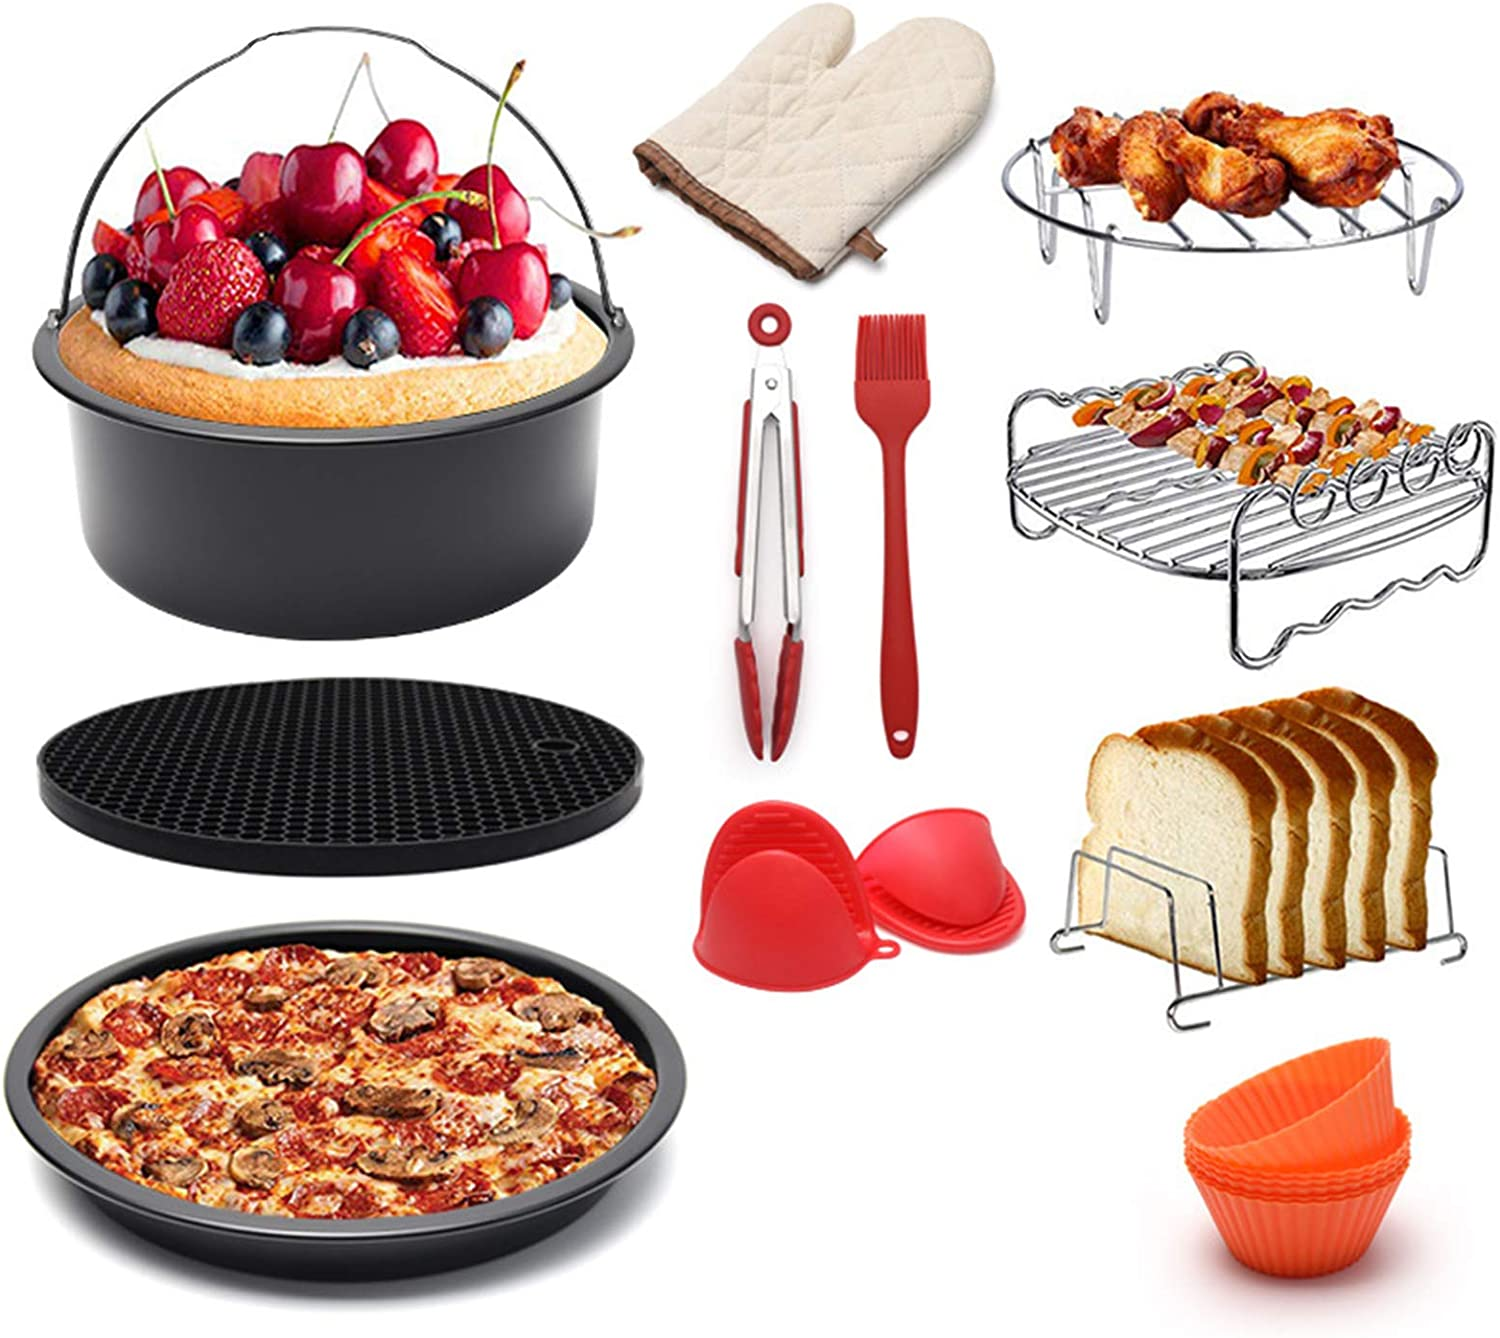 WLKQ 12 Pcs Air Fryer Accessories, Pizza Tray, BBQ Rack, Toast Rack, Cooking Tongs, for Gowise Phillips Cozyna Fits All 5.2QT - 5.8QT Air Fryer, 7In Deep Fryer Accessories